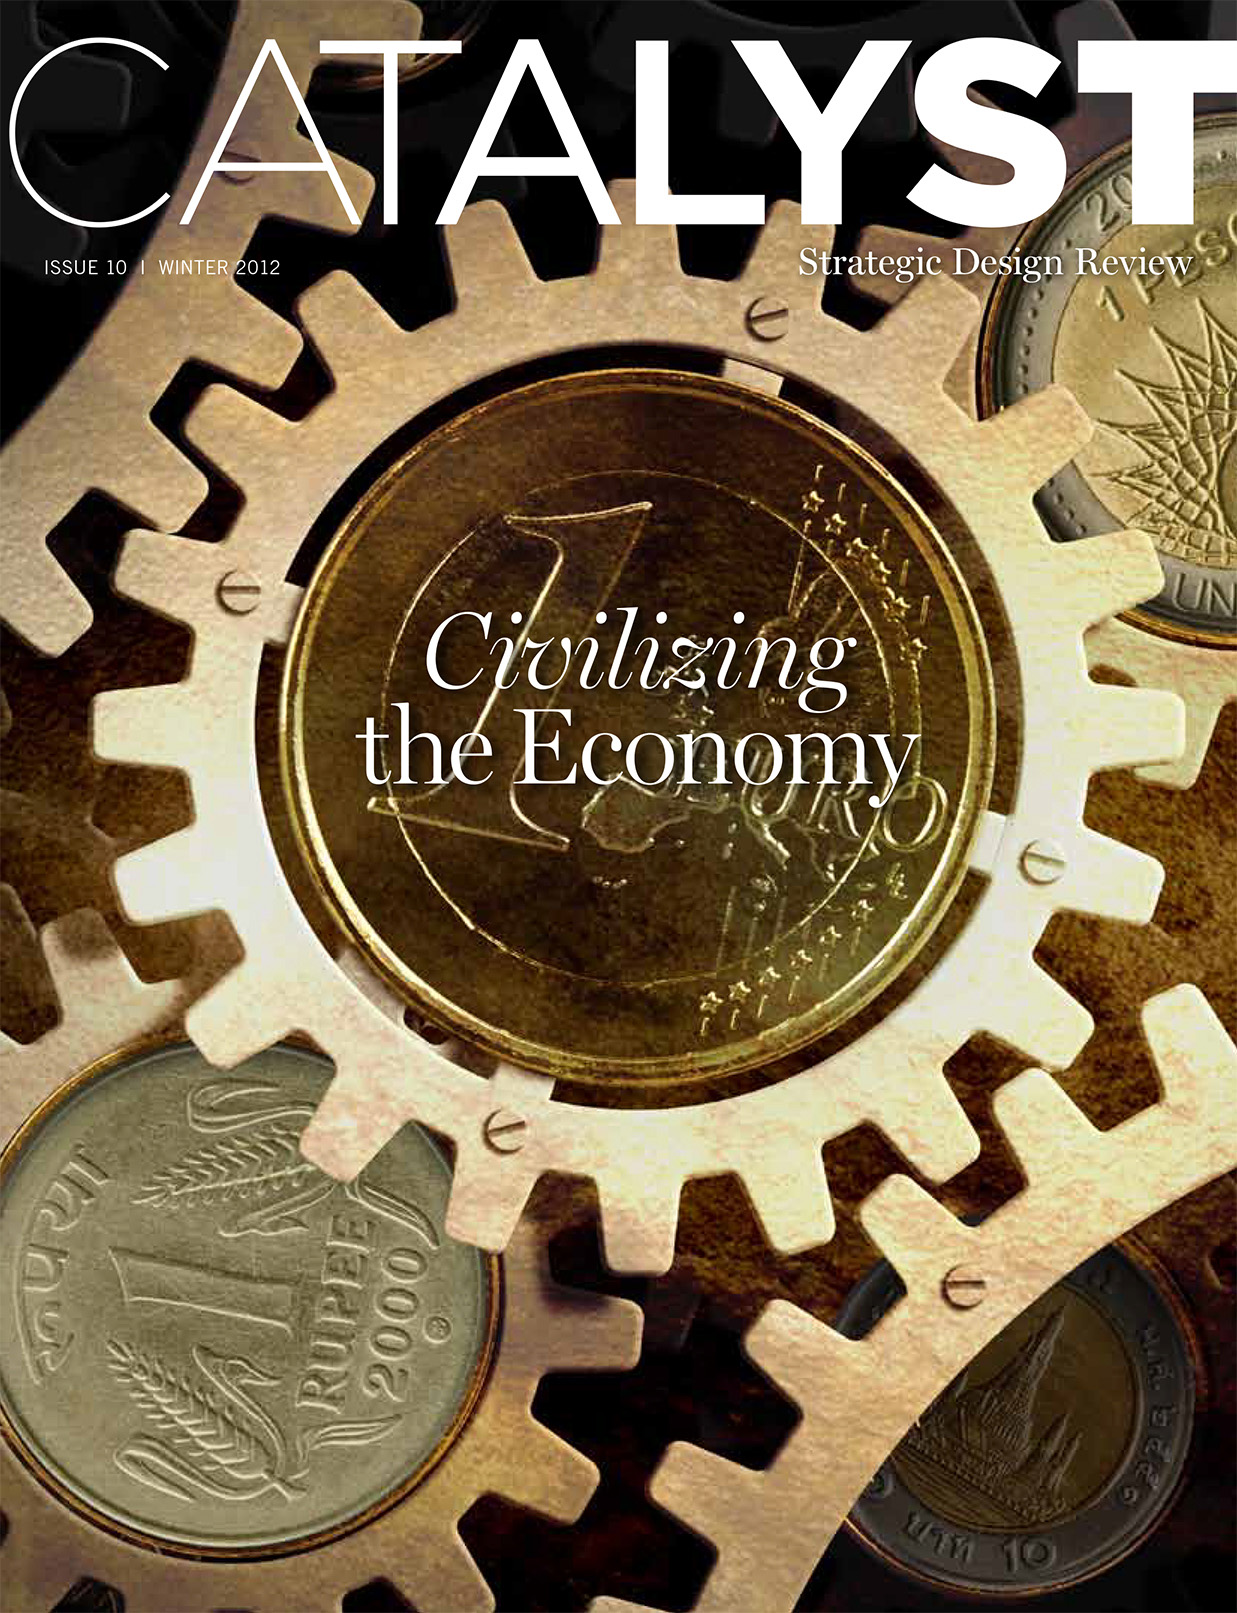 CATALYST ISSUE 10-CoverSm copy